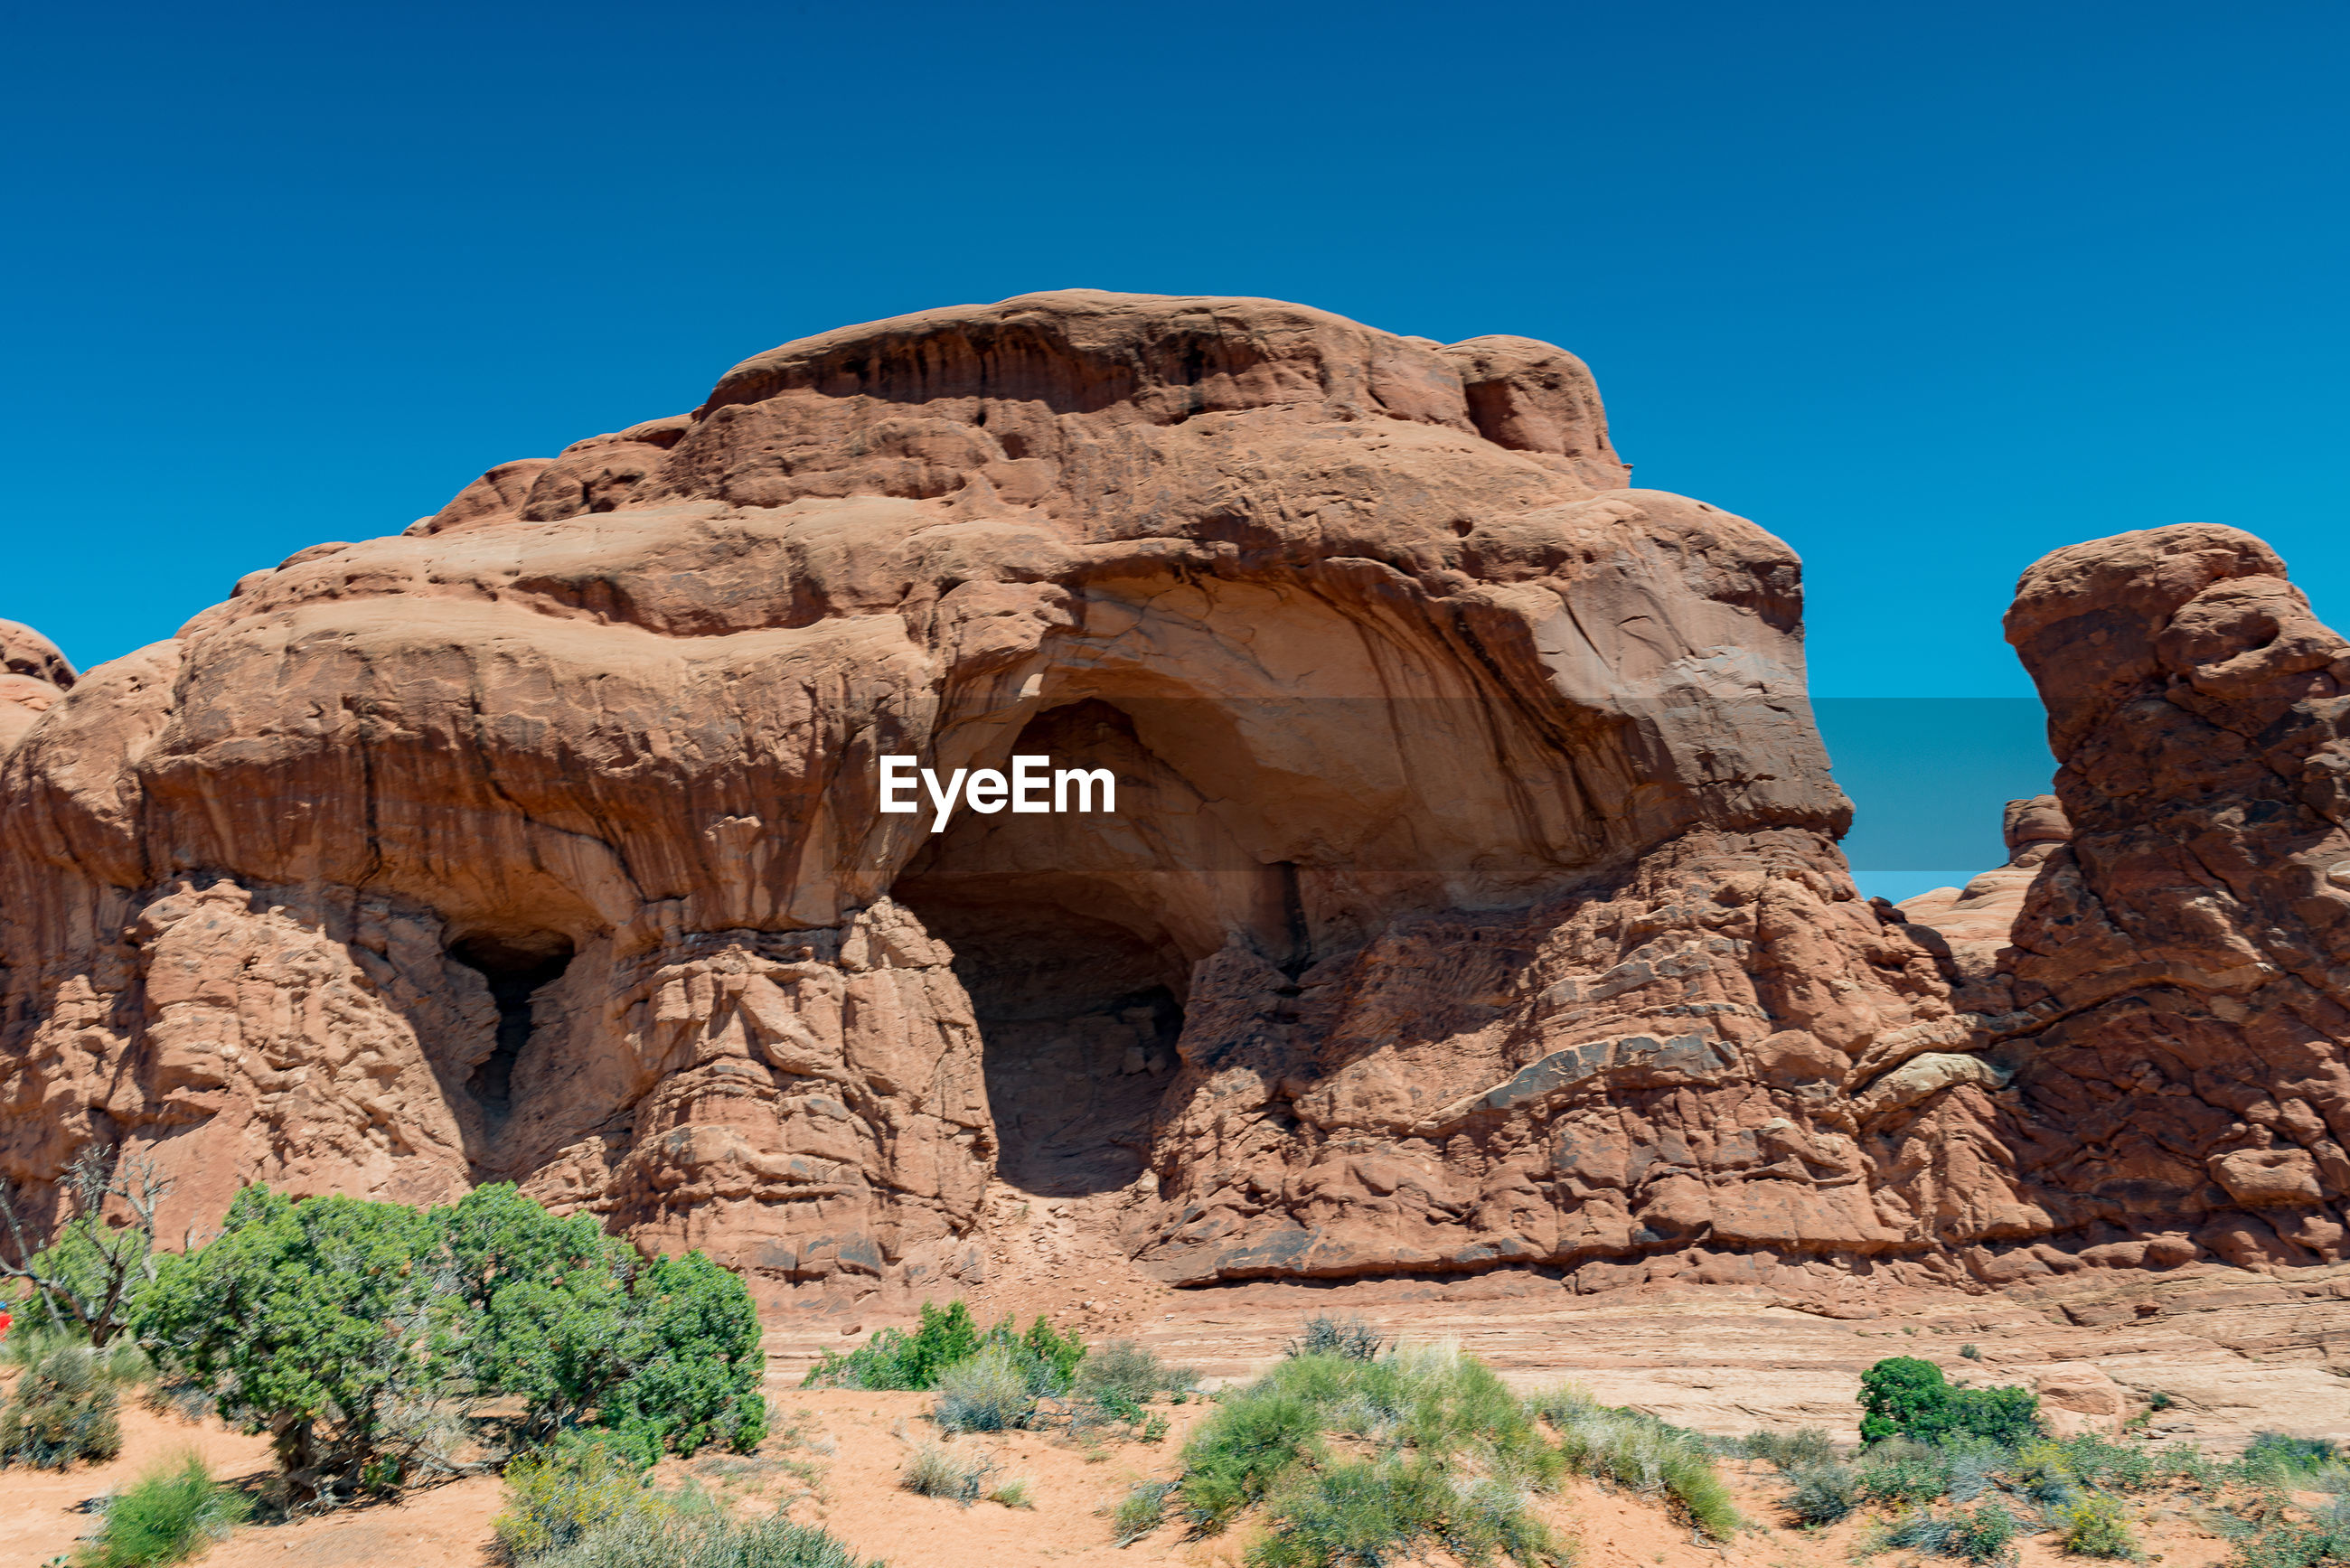 Low angle view of rock formation against blue sky on sunny day